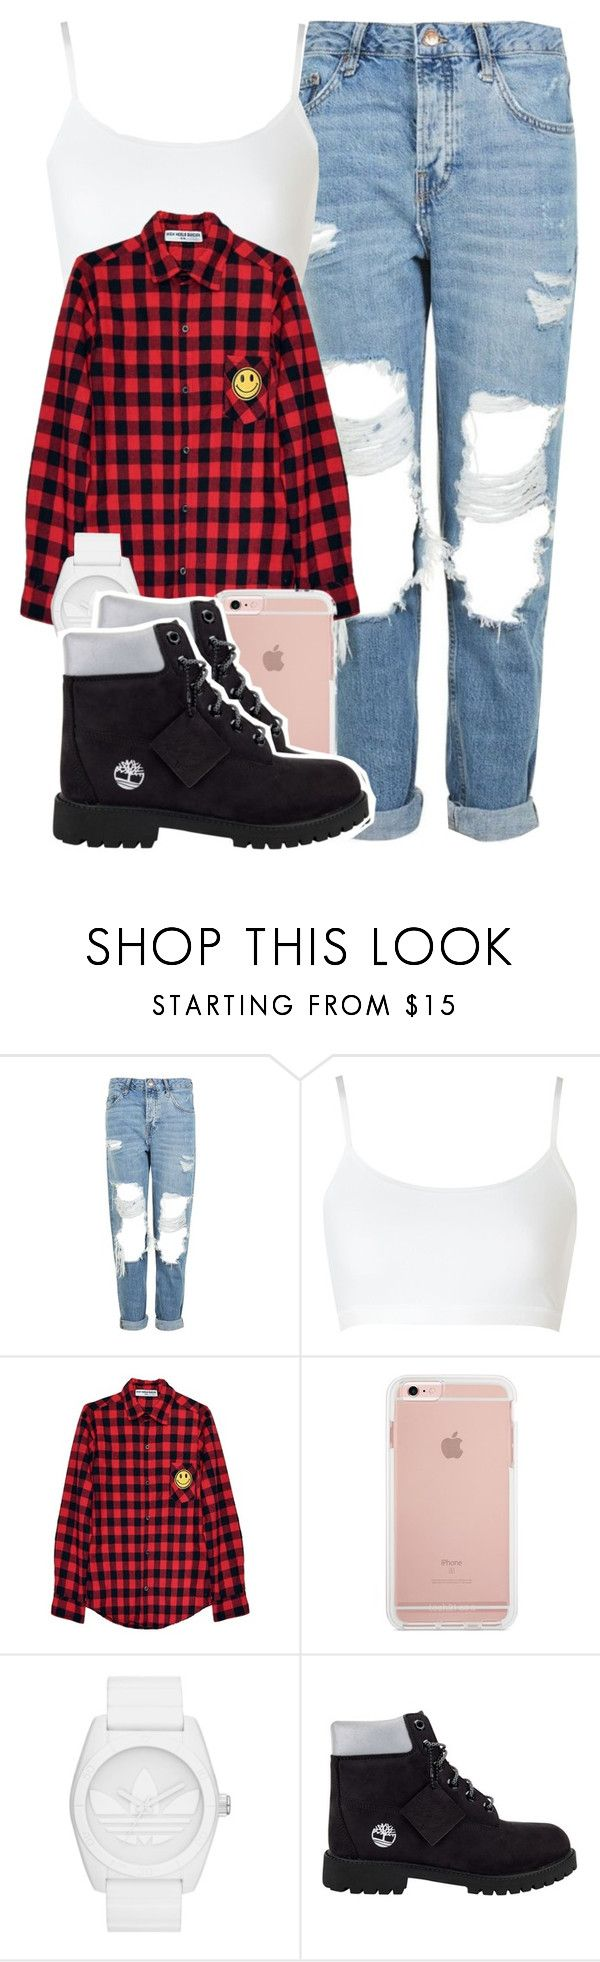 """Untitled #4355"" by dianna-argons-lover ❤ liked on Polyvore featuring Topshop, Sloggi, High Heels Suicide, adidas Originals and Timberland"